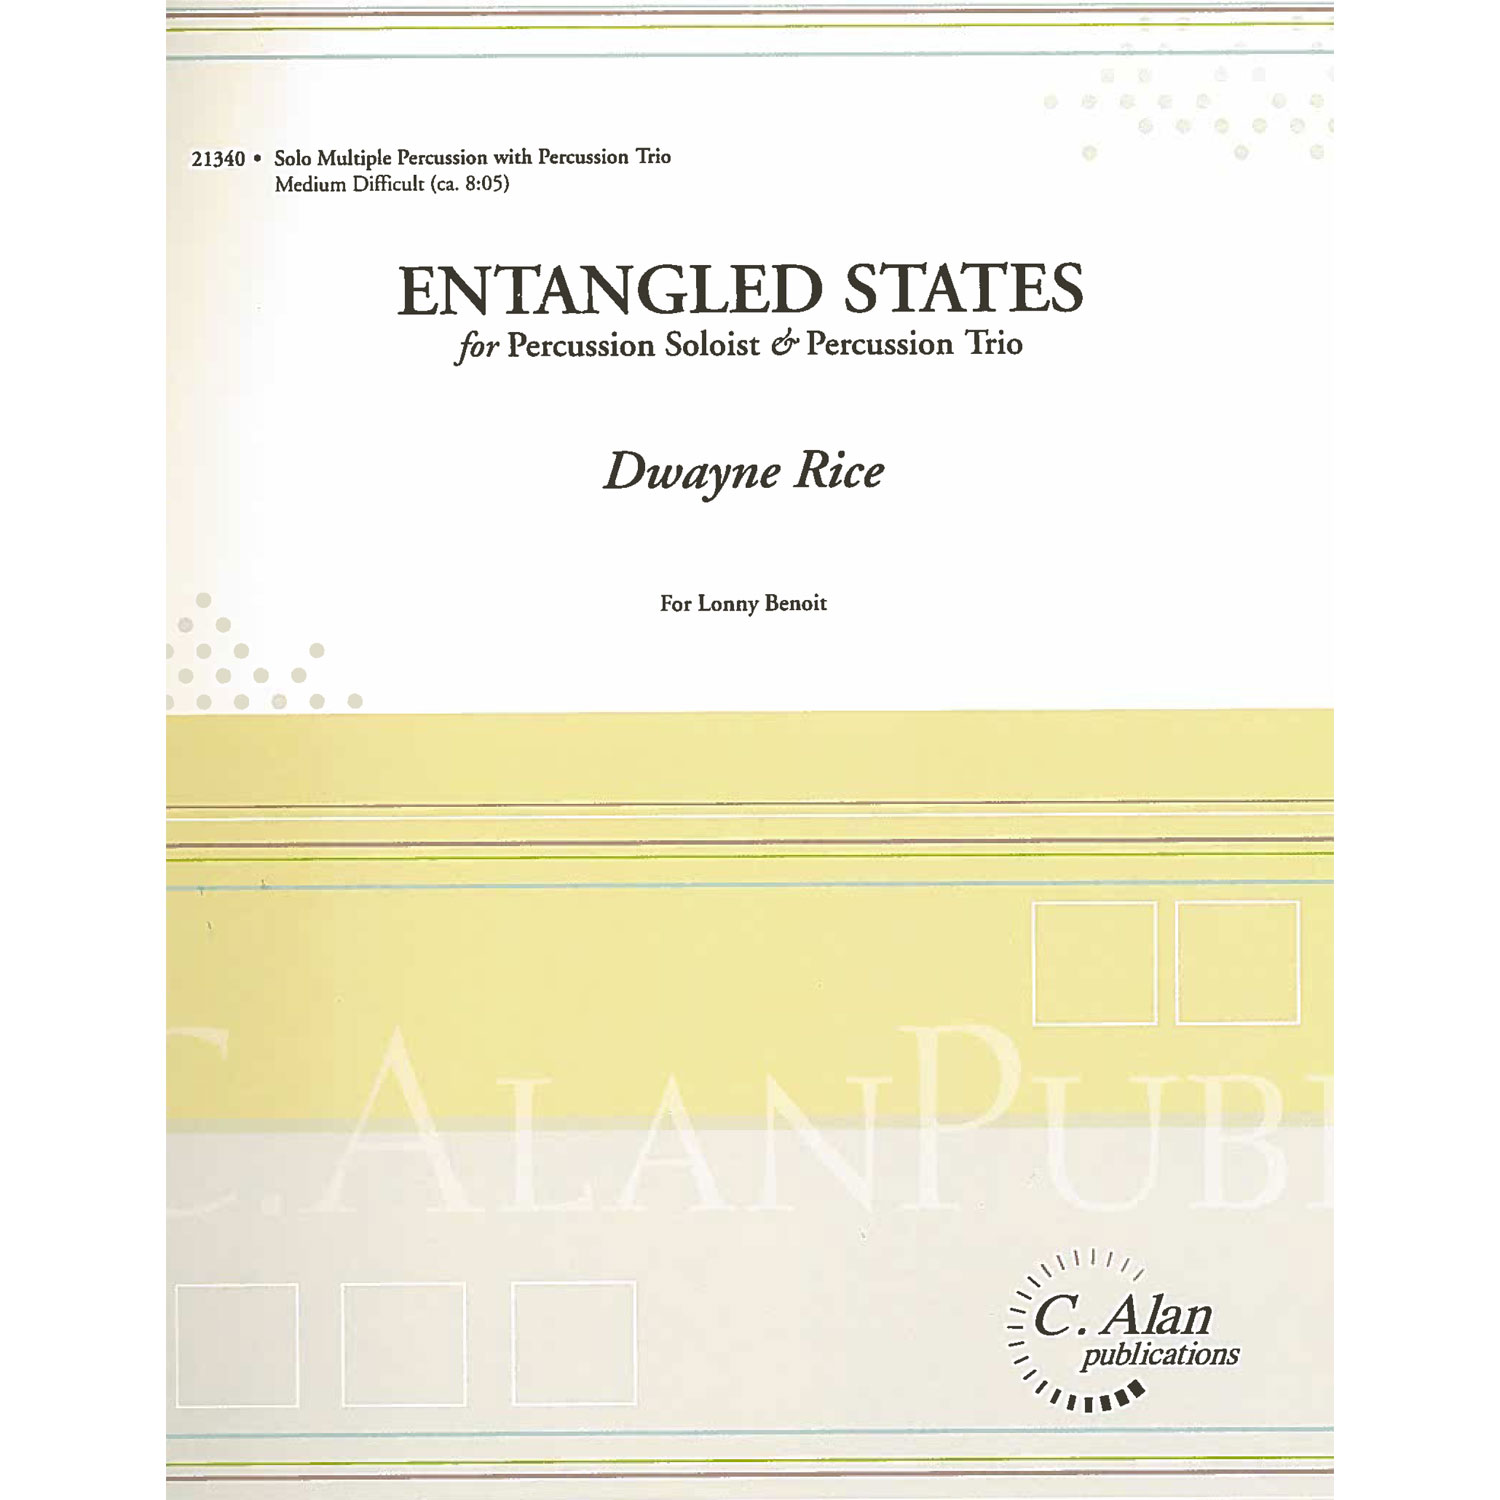 Entangled States by Dwayne Rice